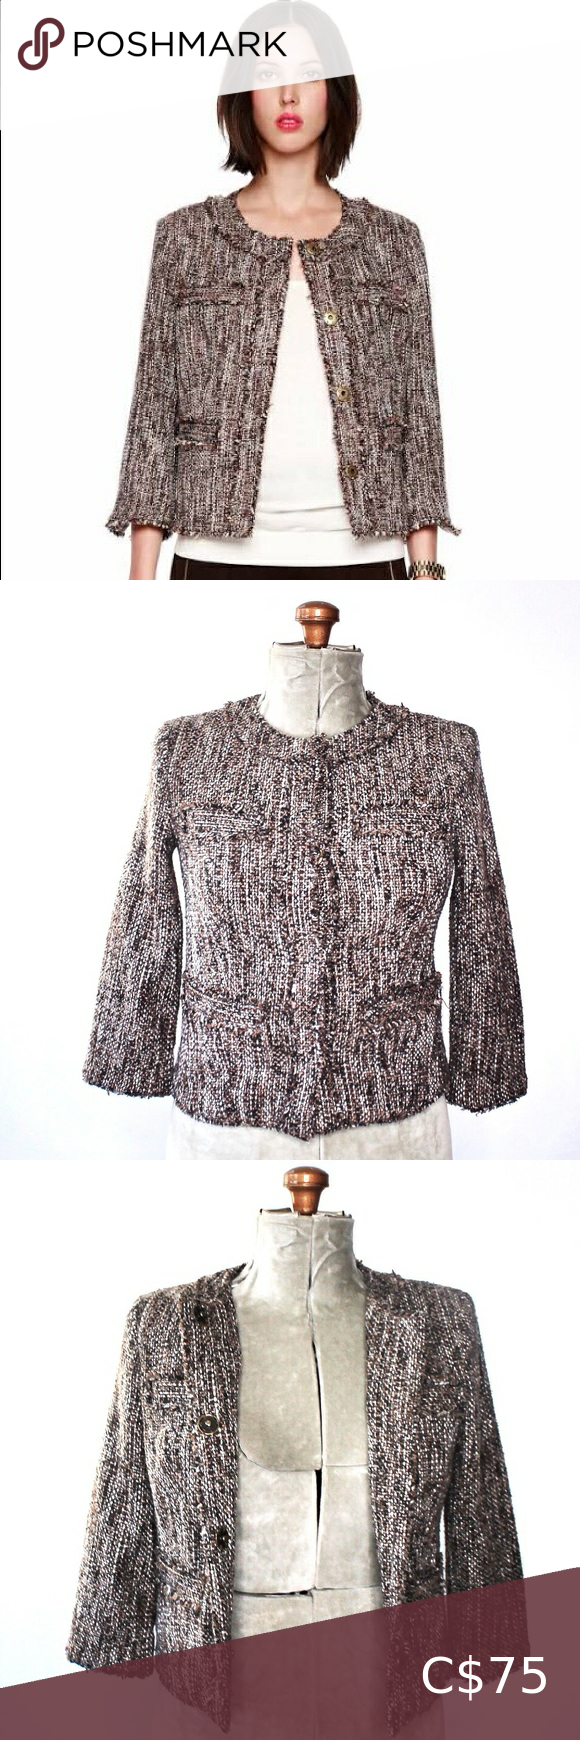 Michael Kors Dark Brown Thick Tweed Blazer Size 2